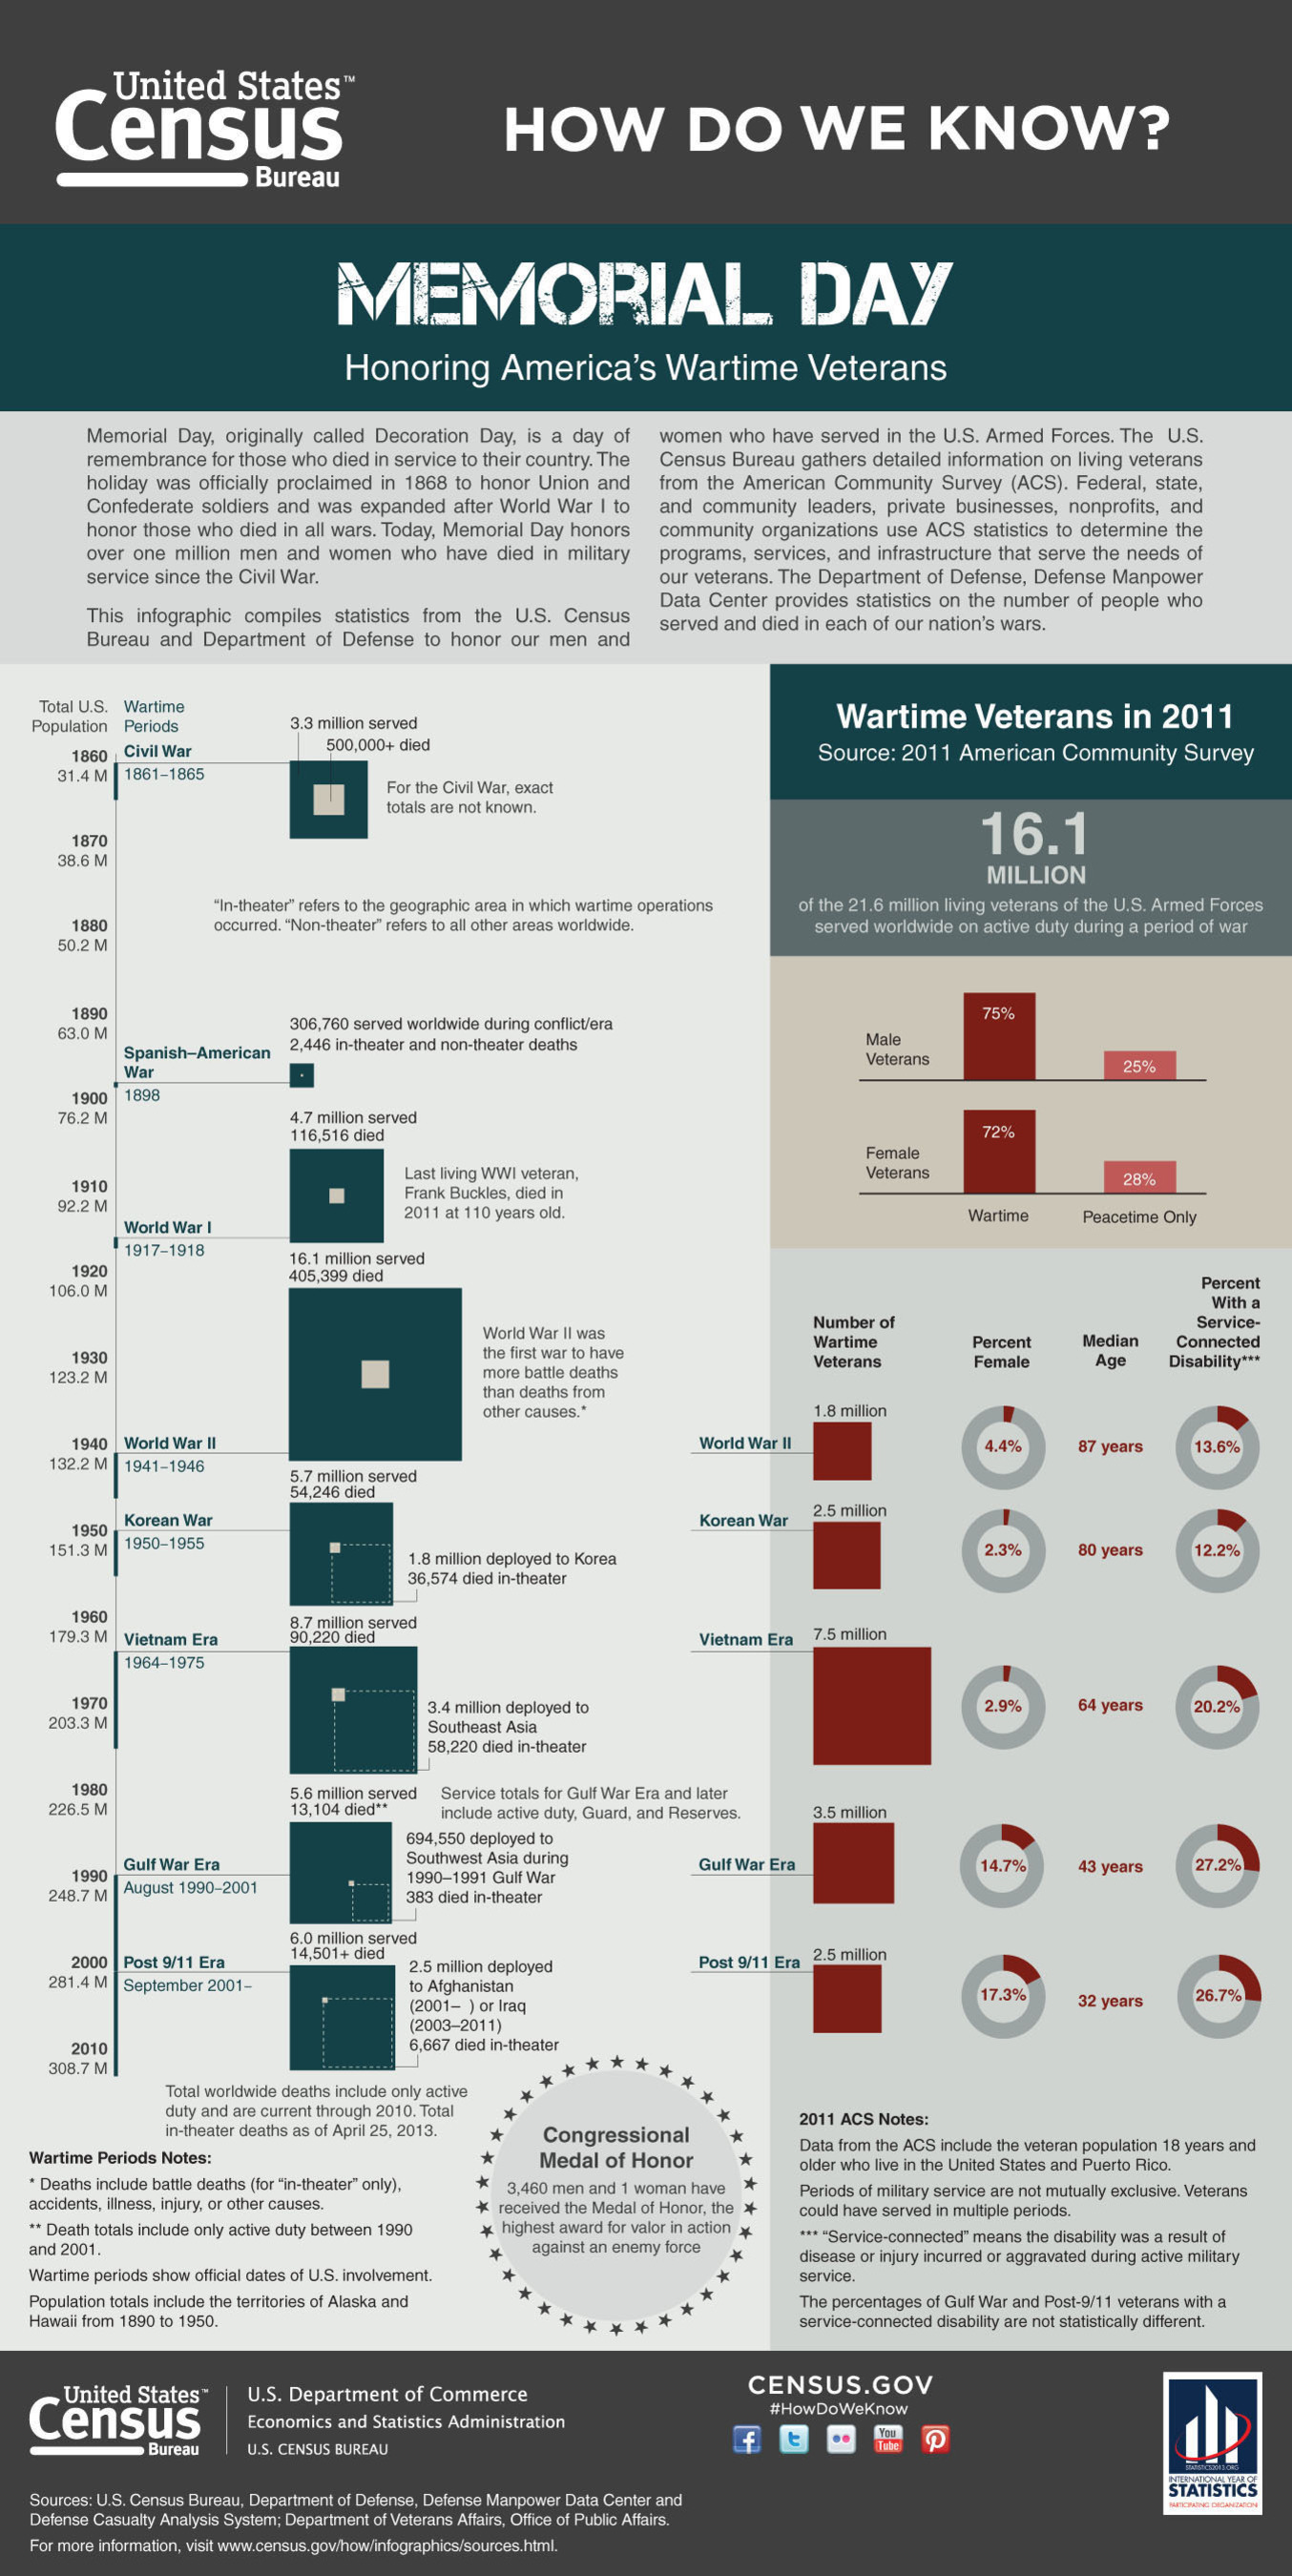 "New Infographic Focuses on Memorial Day -- Memorial Day is a day of remembrance for those who died in service to their country. A new ""How Do We Know?"" infographic, ""Memorial Day: Honoring America's Wartime Veterans"" uses results from the 2011 American Community Survey to profile today's living veterans by the wartime periods in which they served. http://www.census.gov/how/.  (PRNewsFoto/U.S. Census Bureau)"